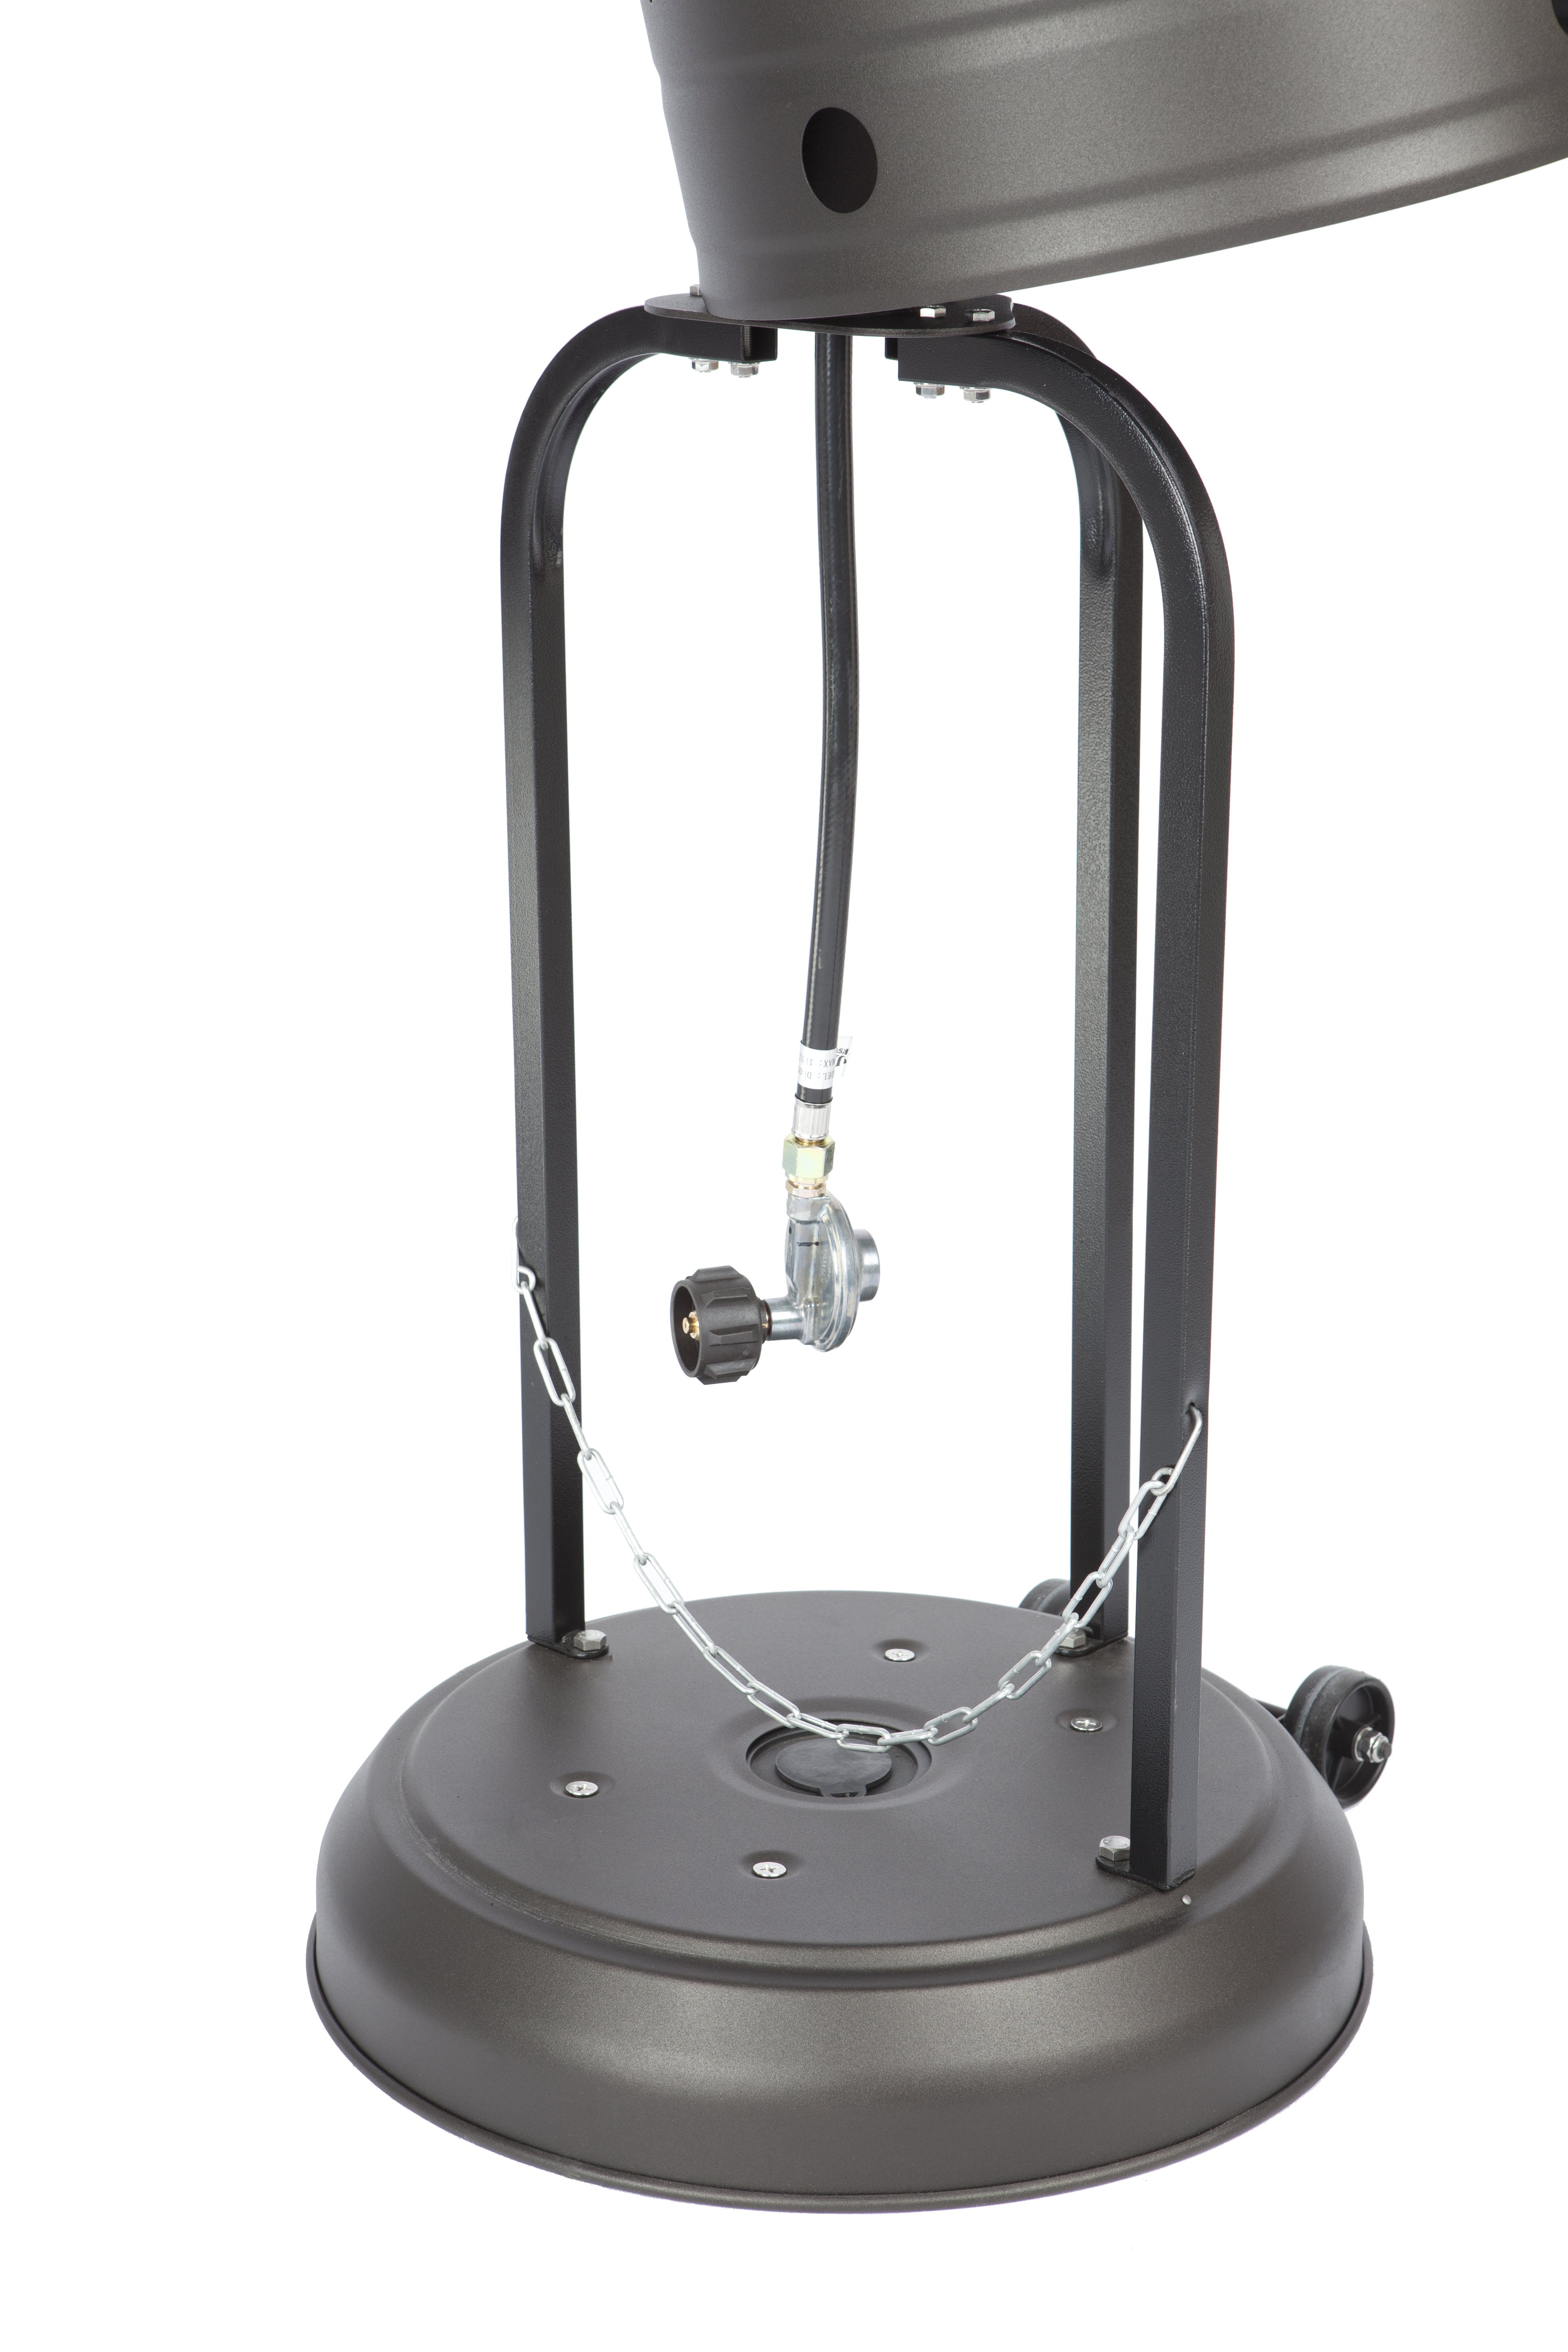 gasmate patio heater instructions